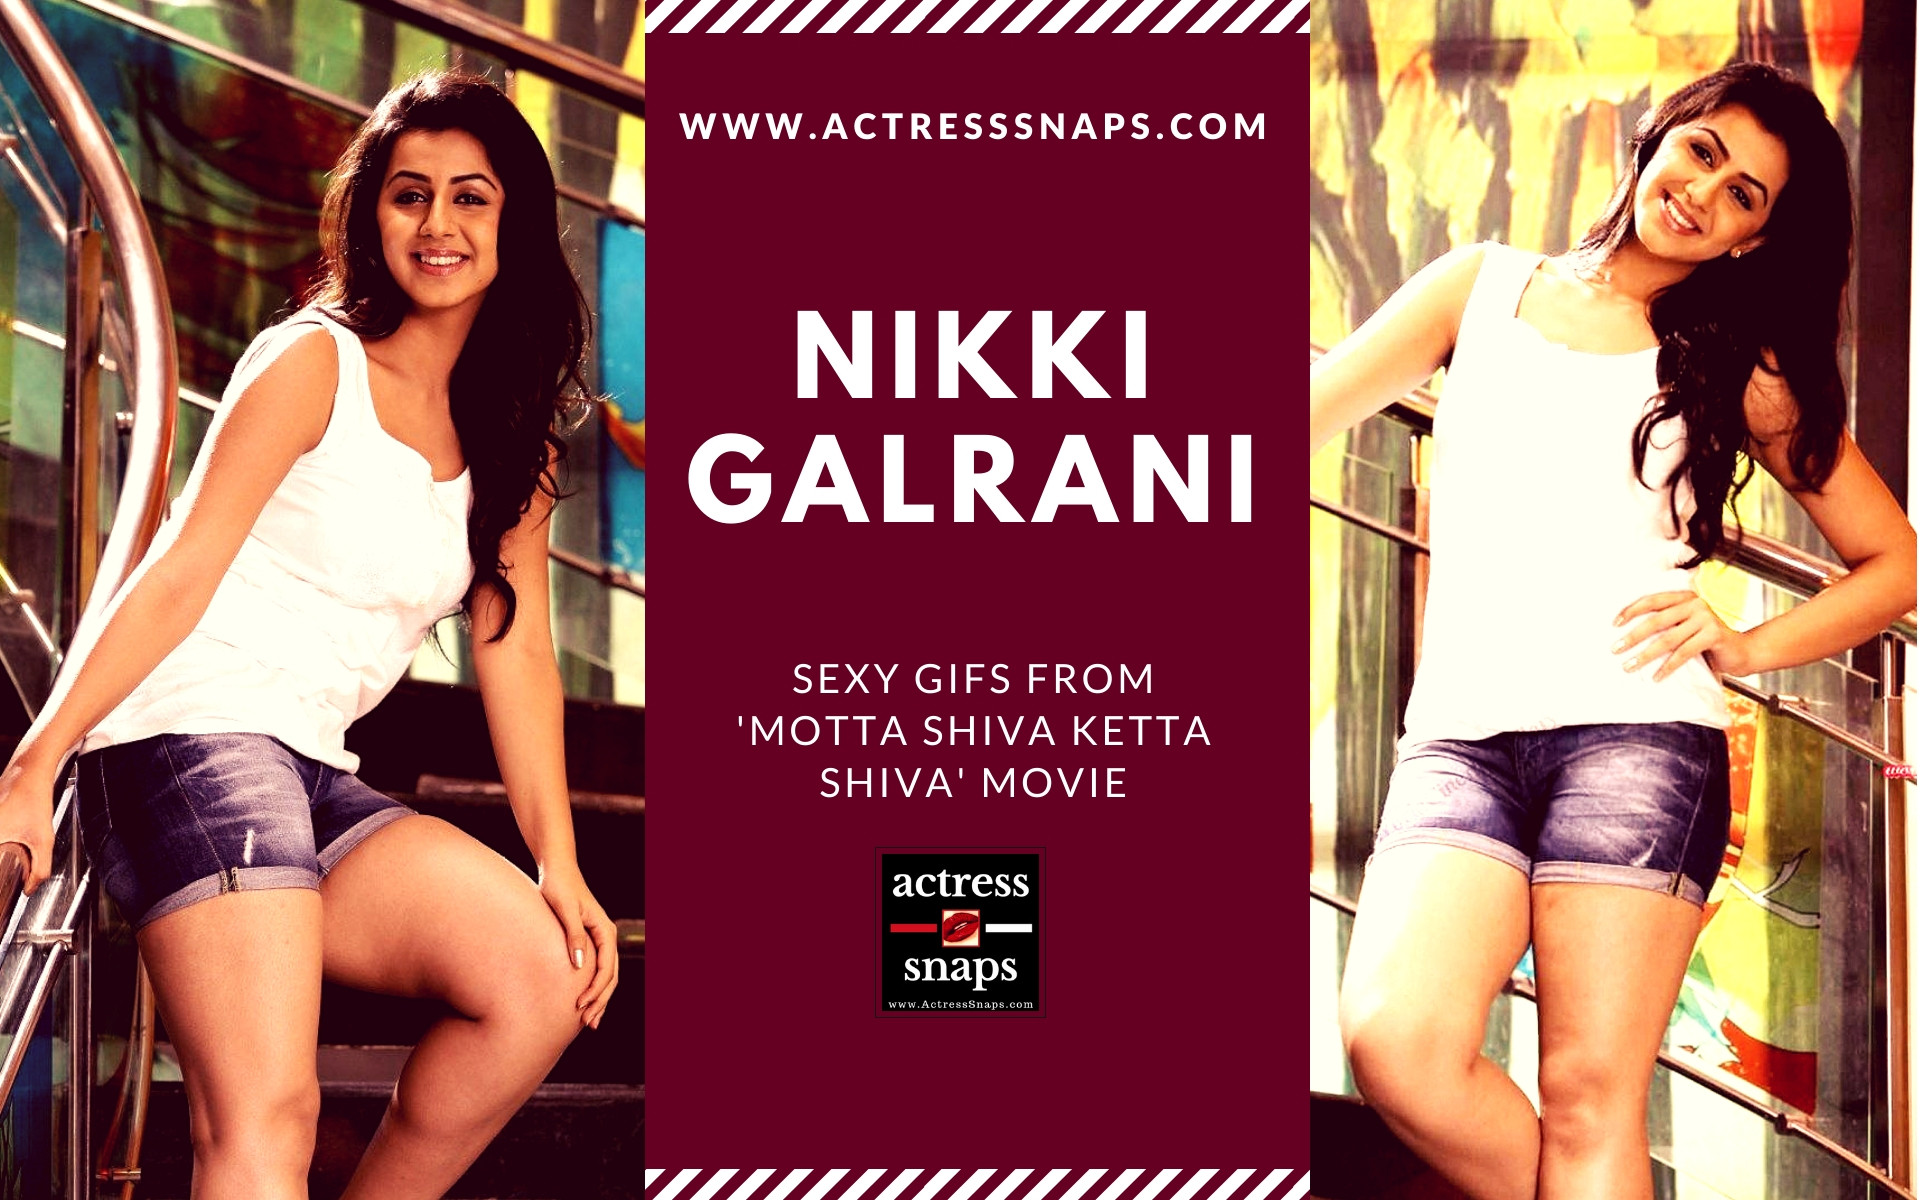 Sexy Nikki Galrani GIFs - Sexy Actress Pictures | Hot Actress Pictures - ActressSnaps.com